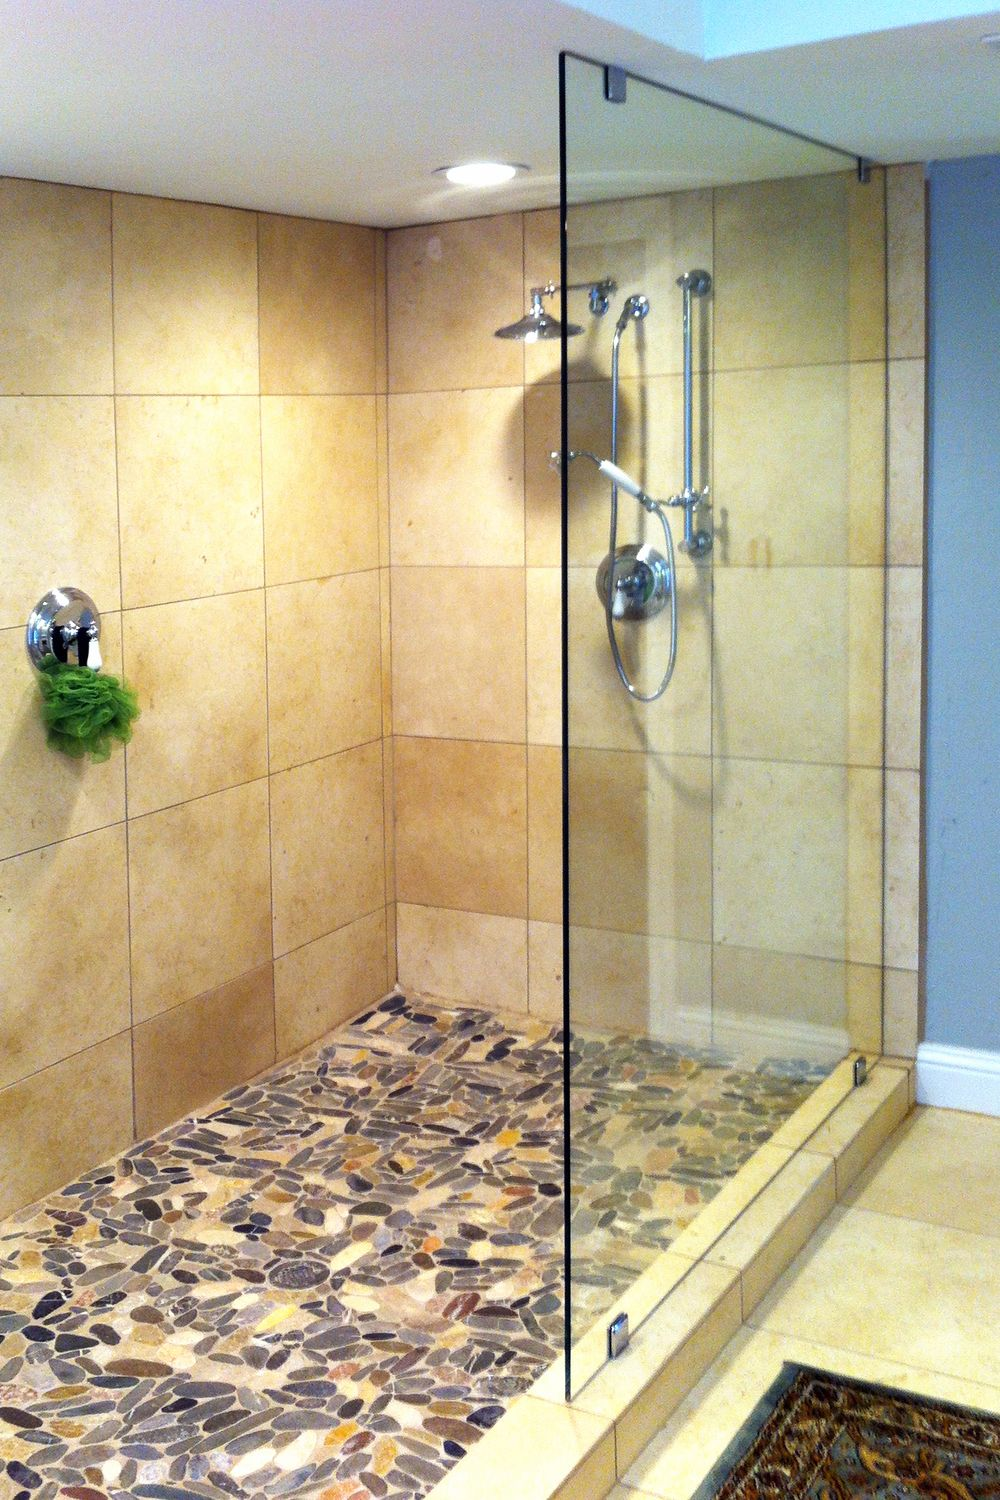 3 Not All Enclosures Require A Door This Shower Needs Only A Fixed Splash Panel Running Flo Glass Shower Panels Glass Shower Doors Bathroom Shower Panels